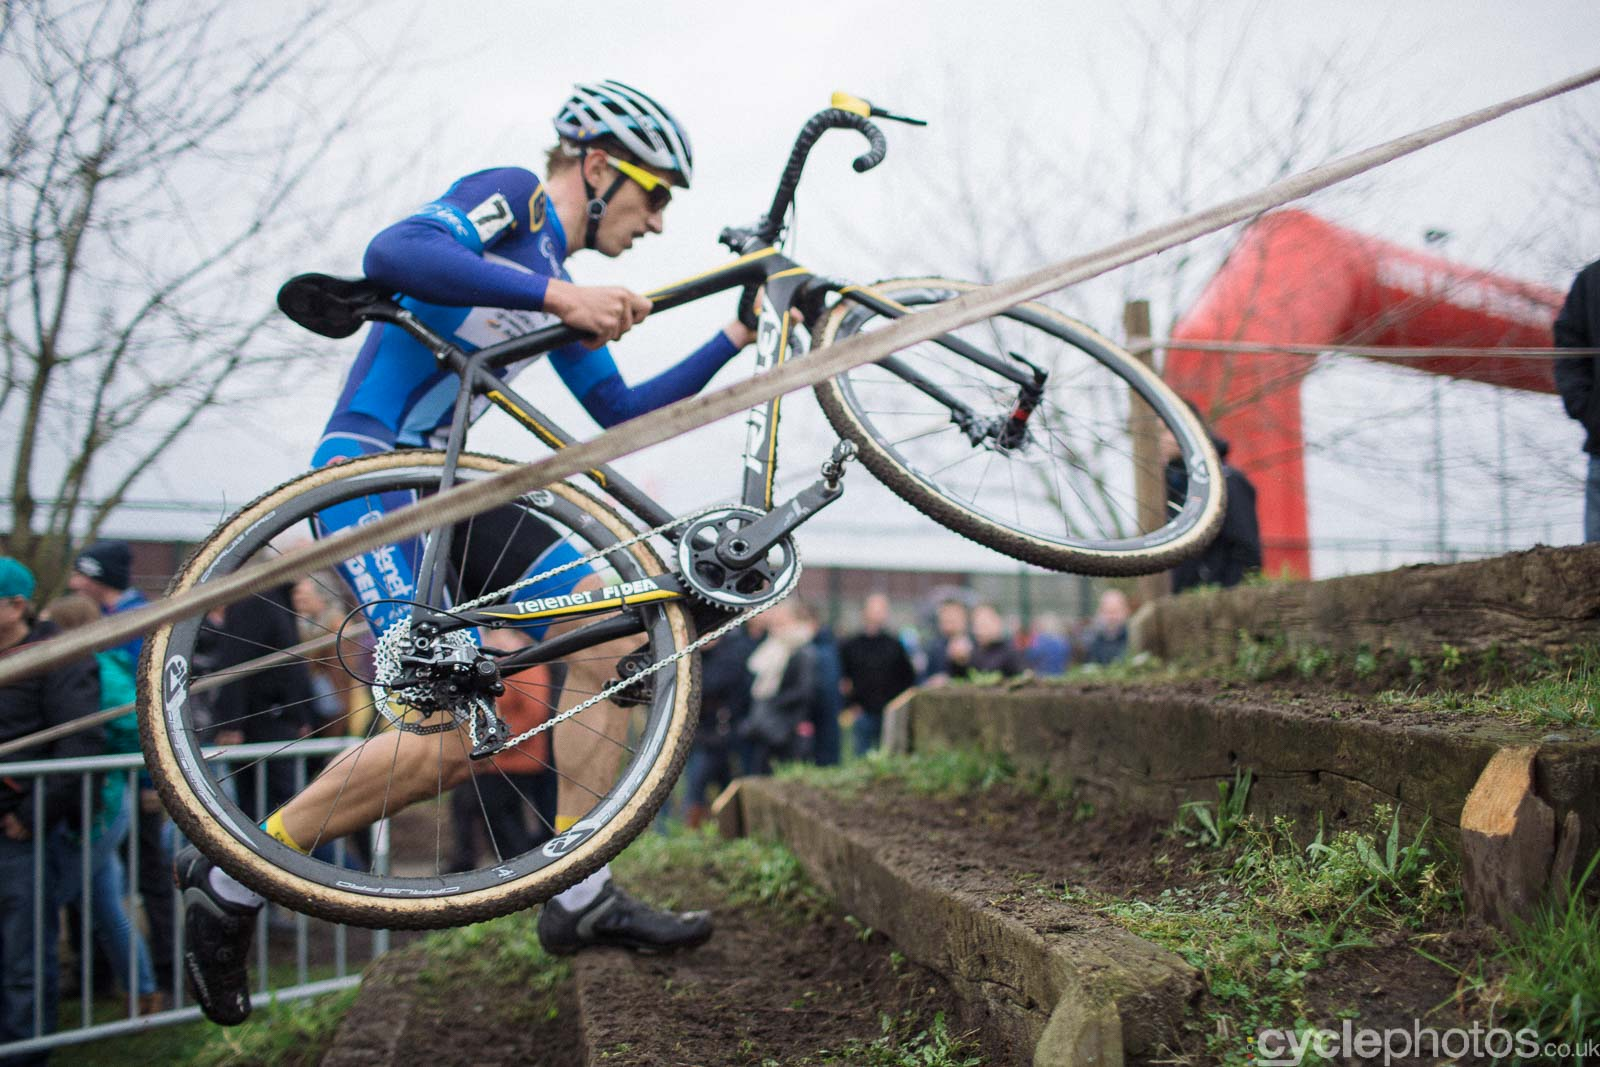 2015-cyclephotos-cyclocross-azencross-123247-quinten-hermans